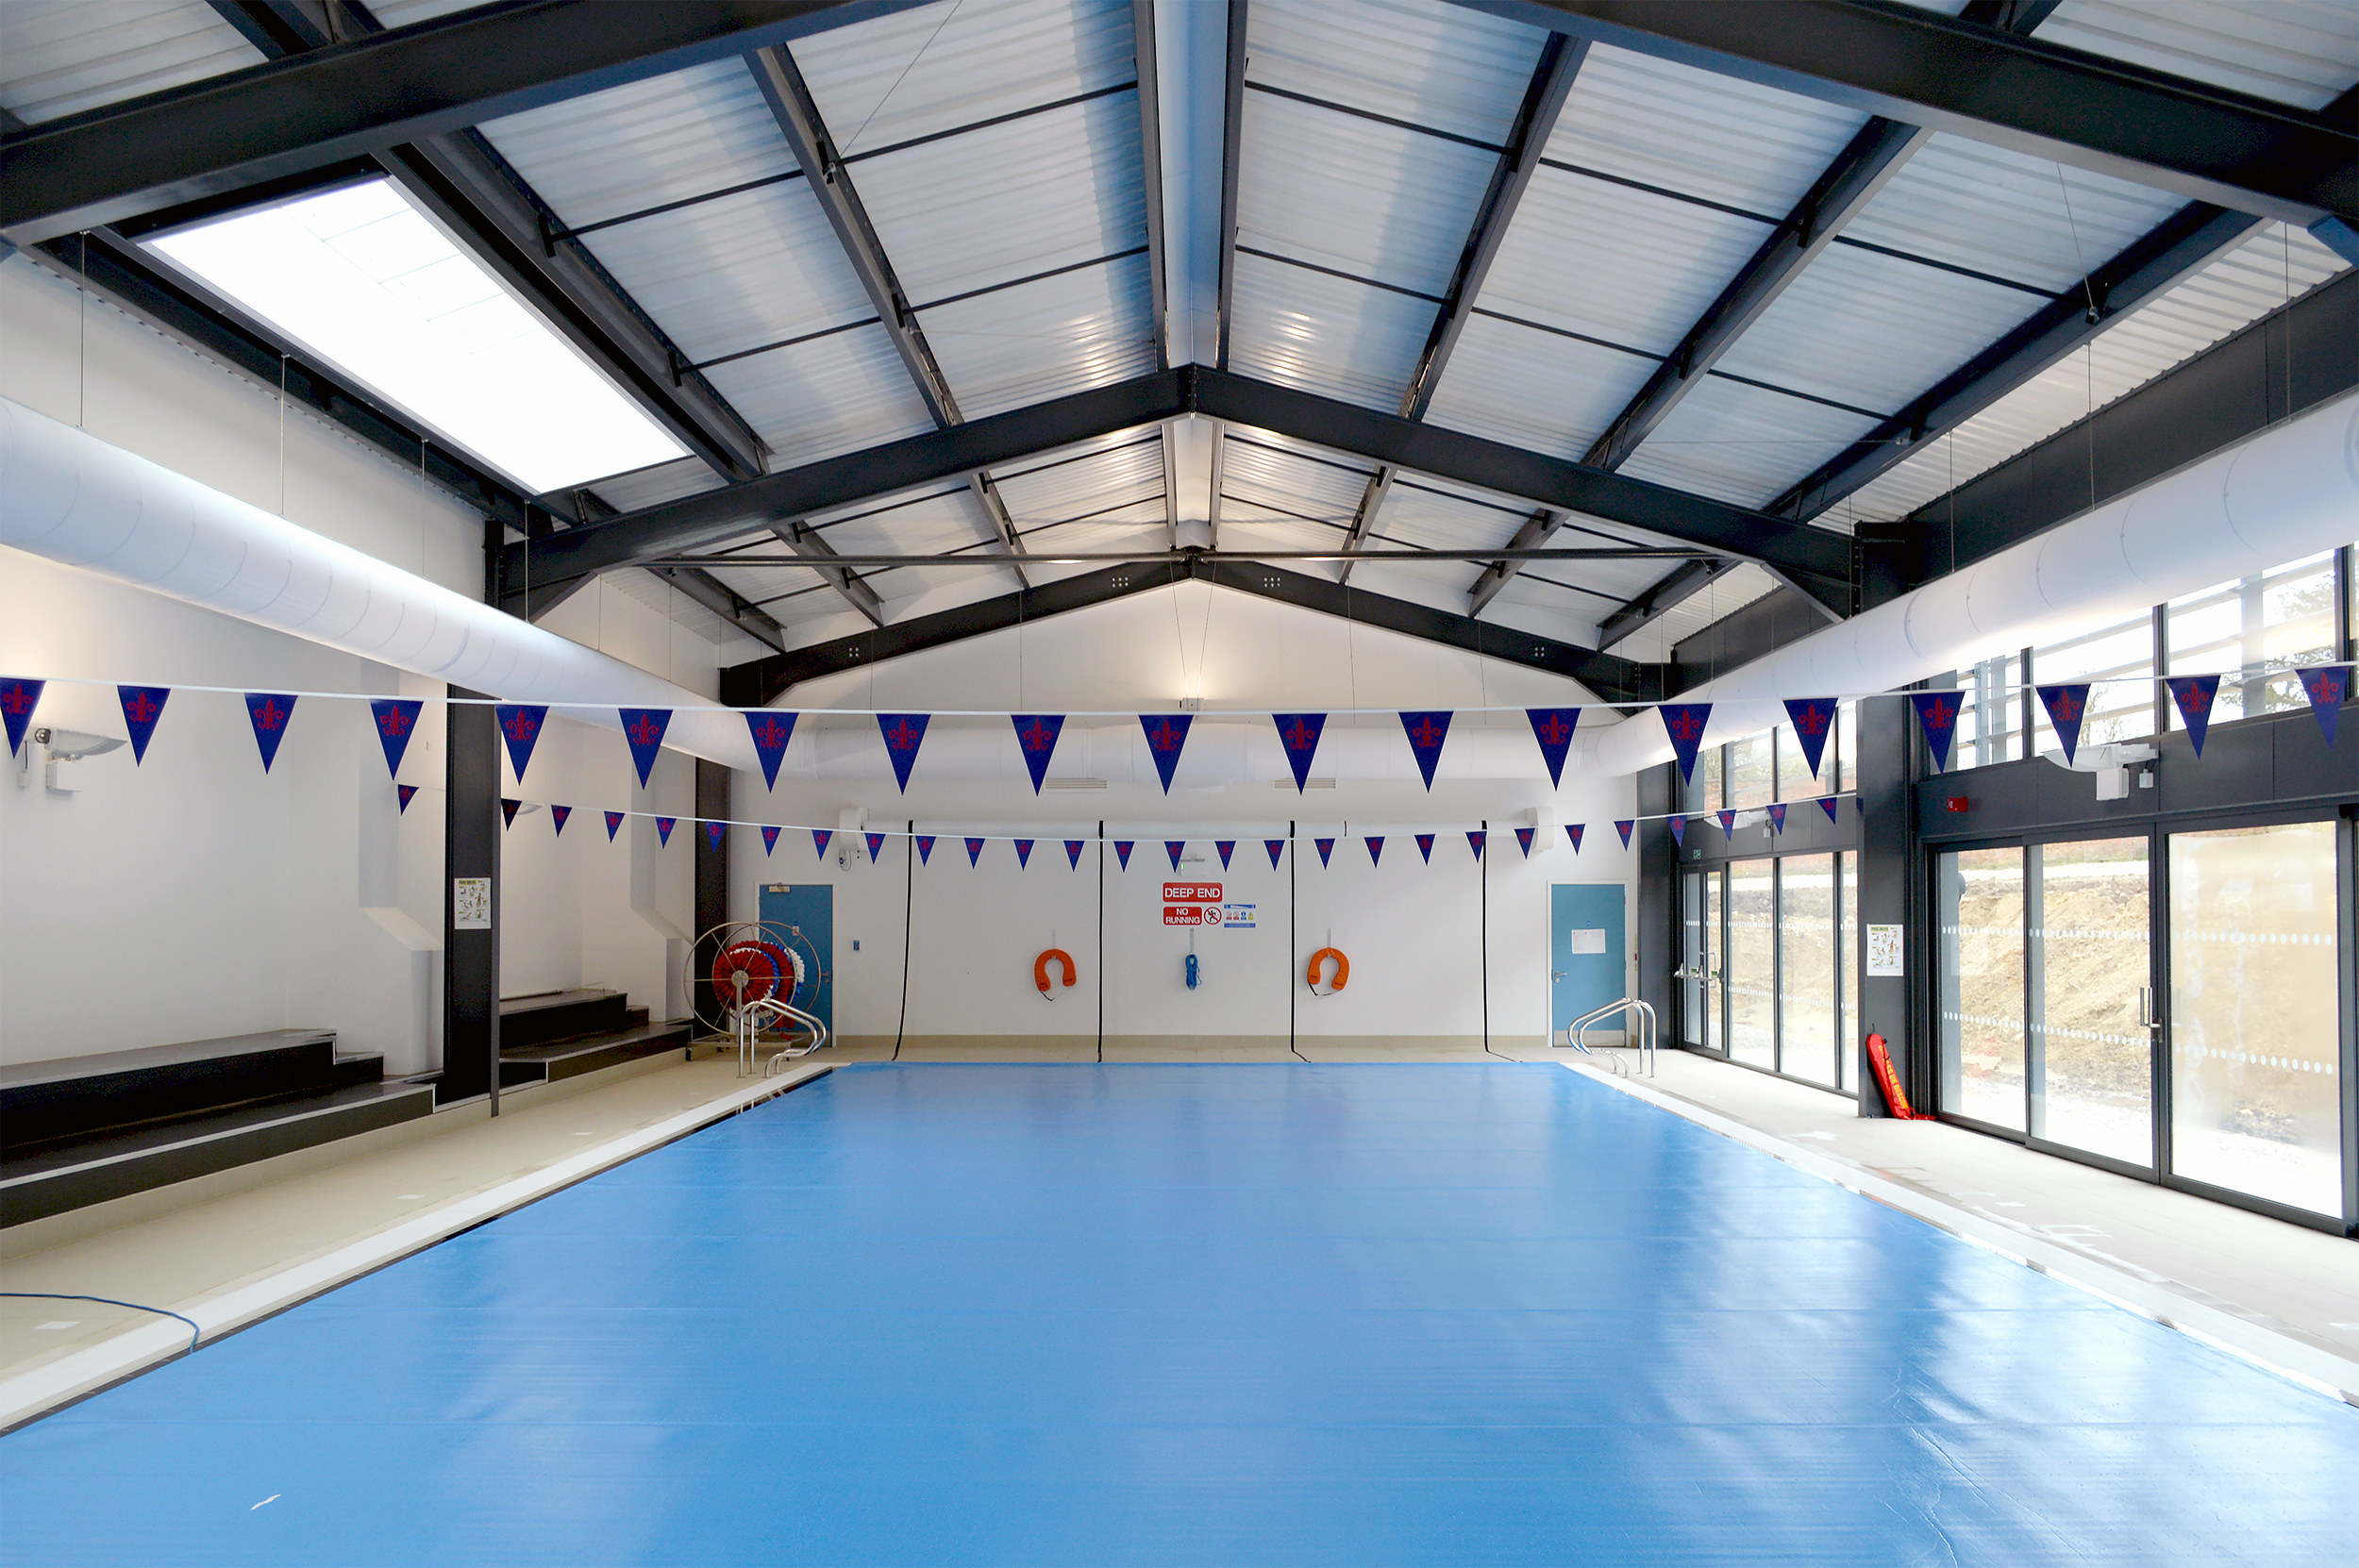 Indoor swimming pool with Prihoda fabric ducts.